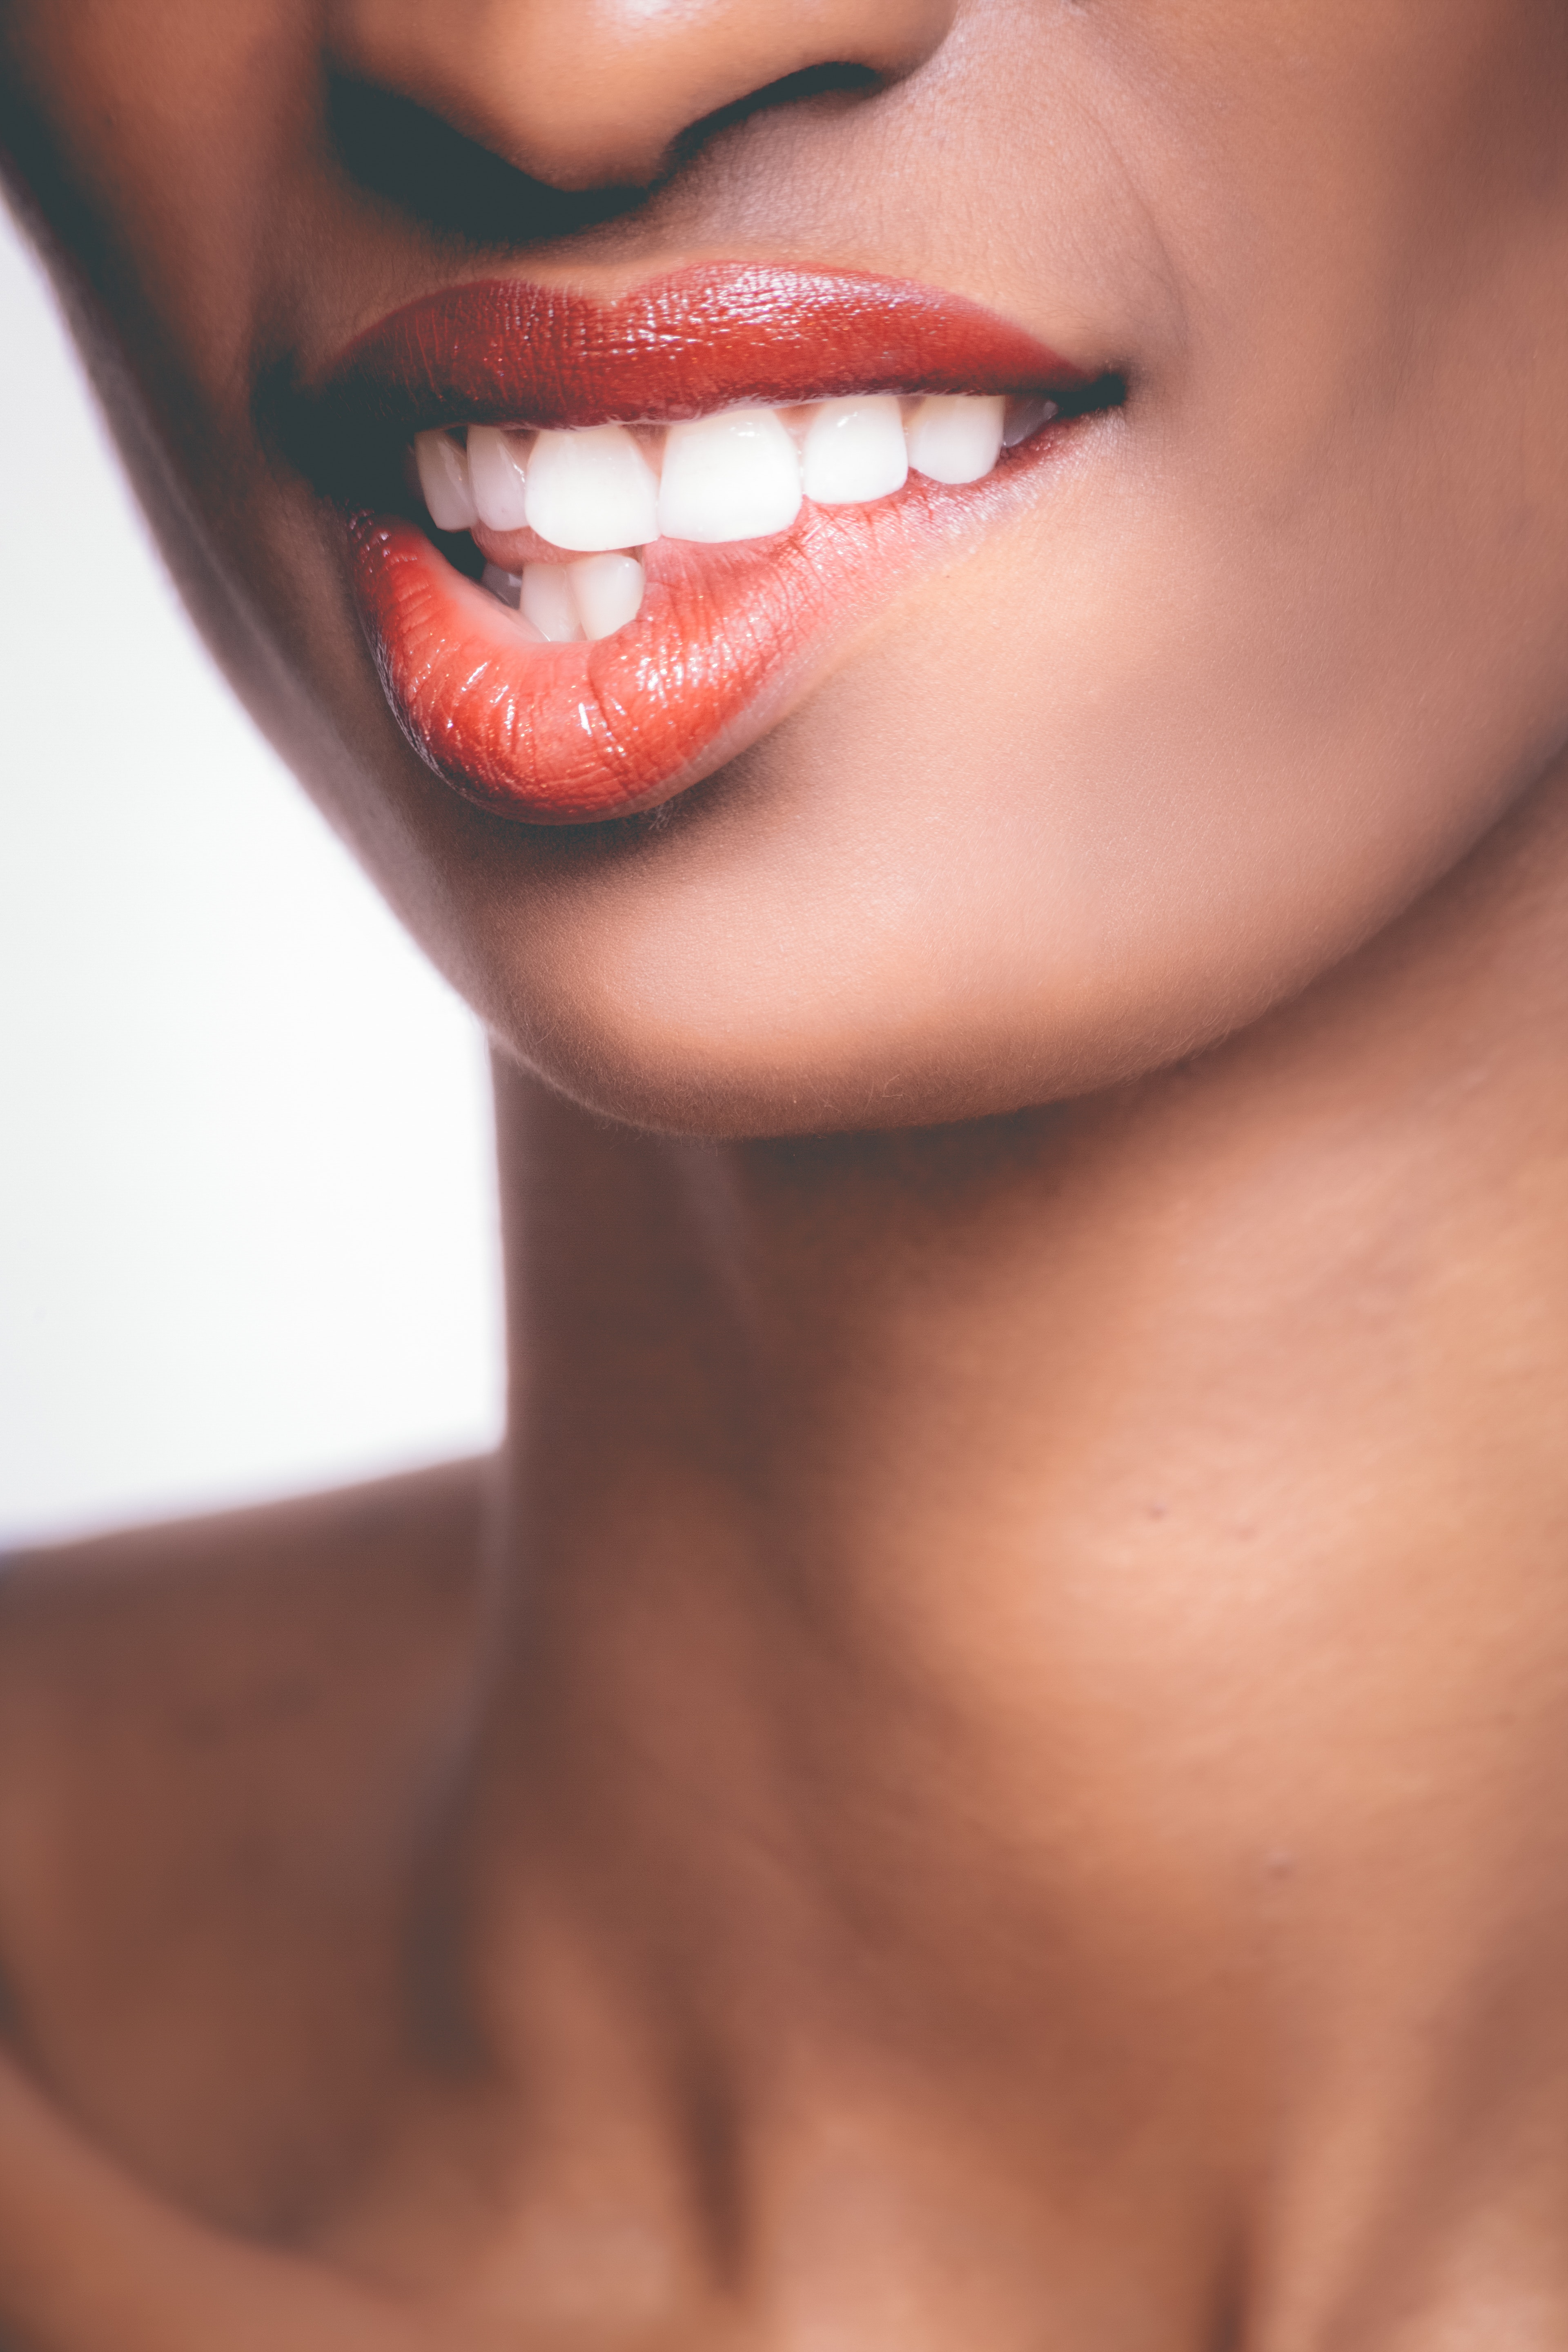 Photo of Person Biting It's Own Red Lips, Attractive, Posing, Nude, Person, HQ Photo